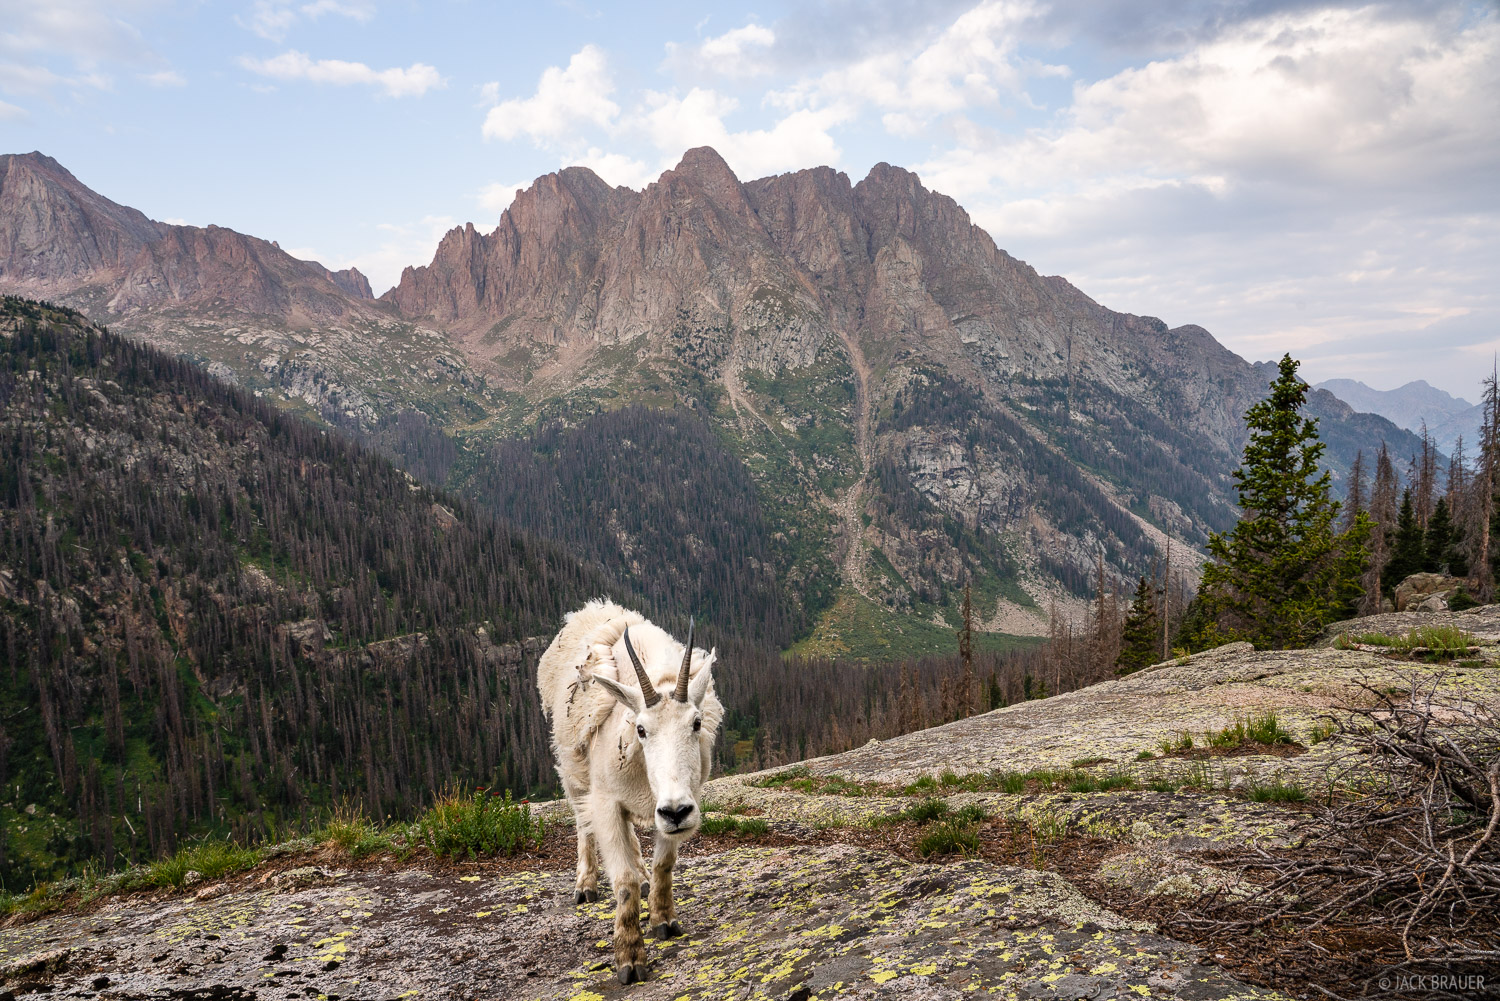 Animas Mountain, Colorado, Needle Mountains, San Juan Mountains, Weminuche Wilderness, mountain goat, photo